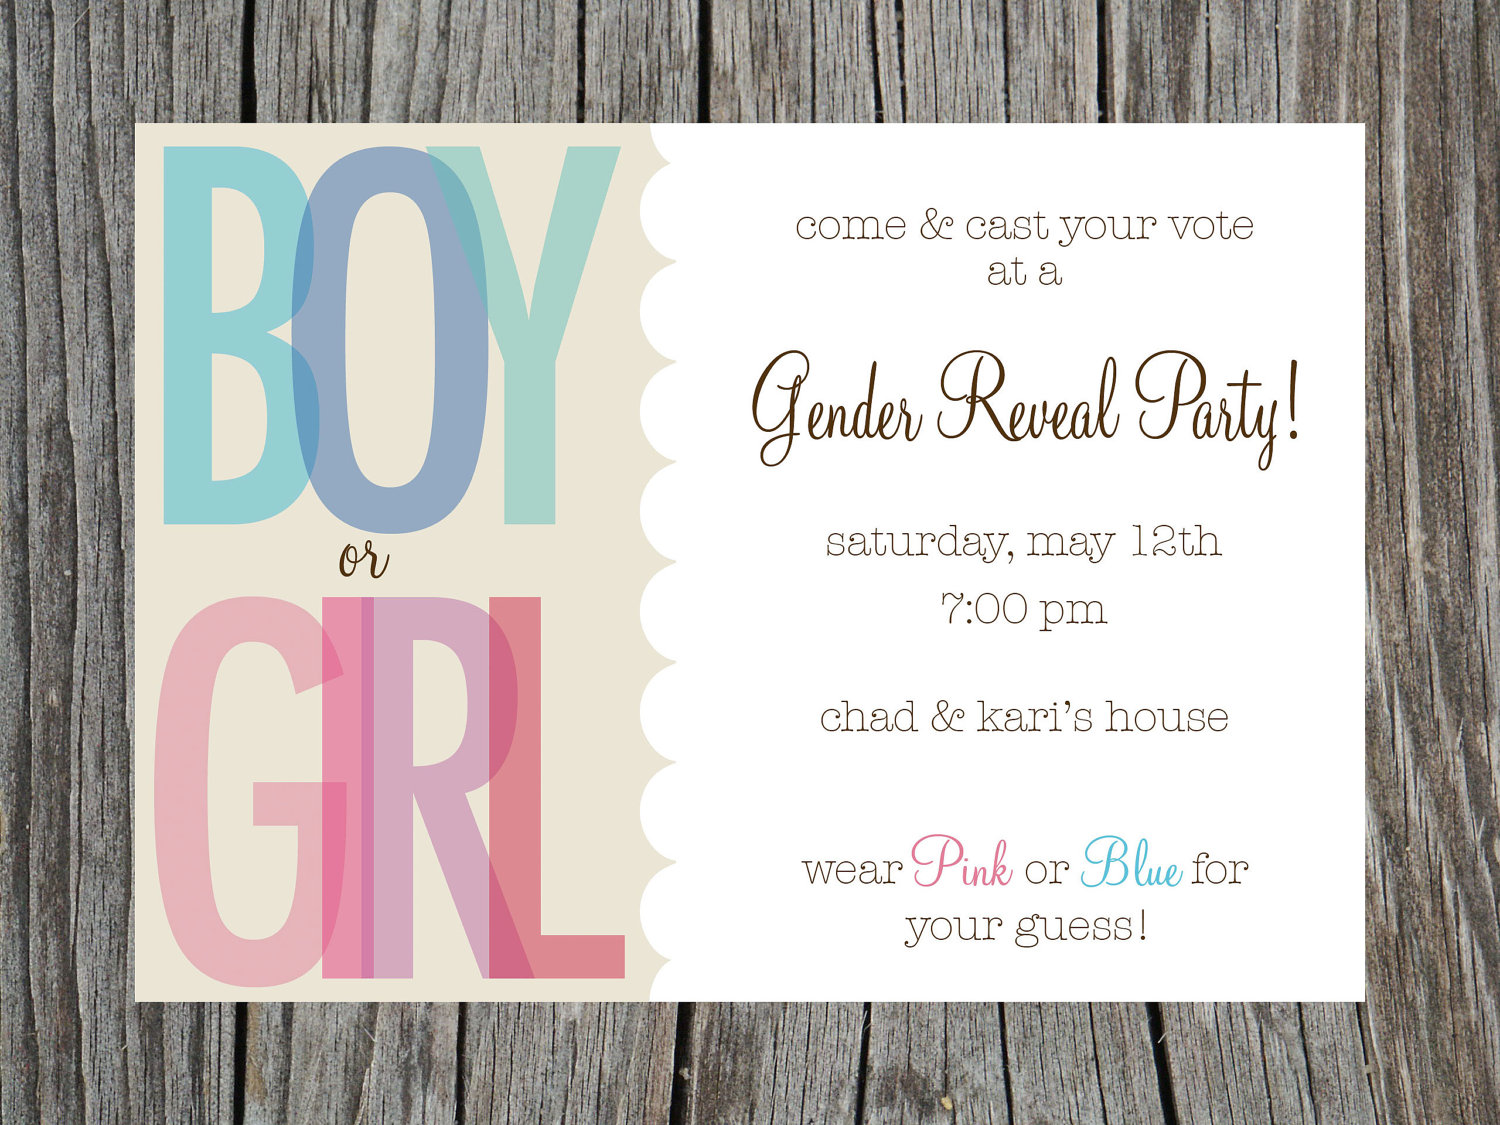 1000+ Images About Gender Reveal Party On Pinterest